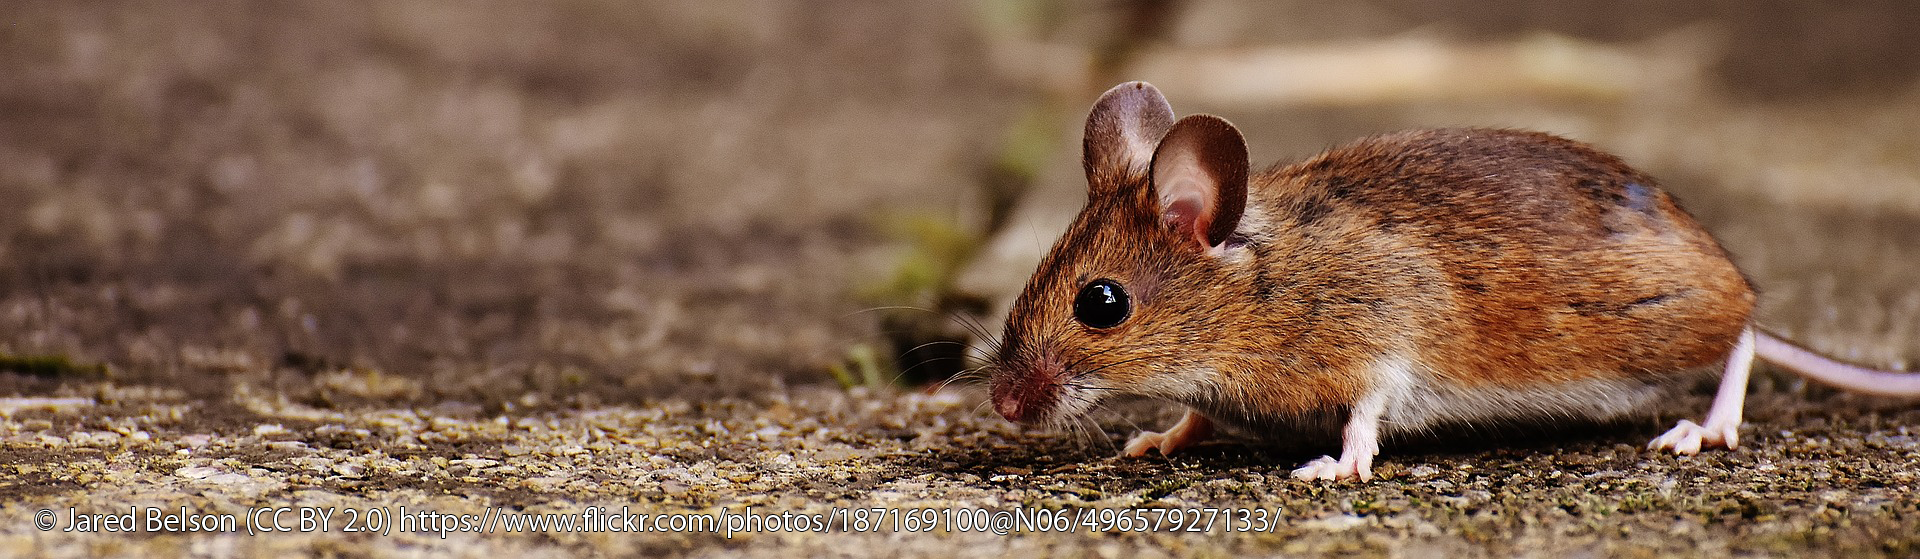 Mouse © Jared Belson (CC BY 2.0) https://www.flickr.com/photos/187169100@N06/49657927133